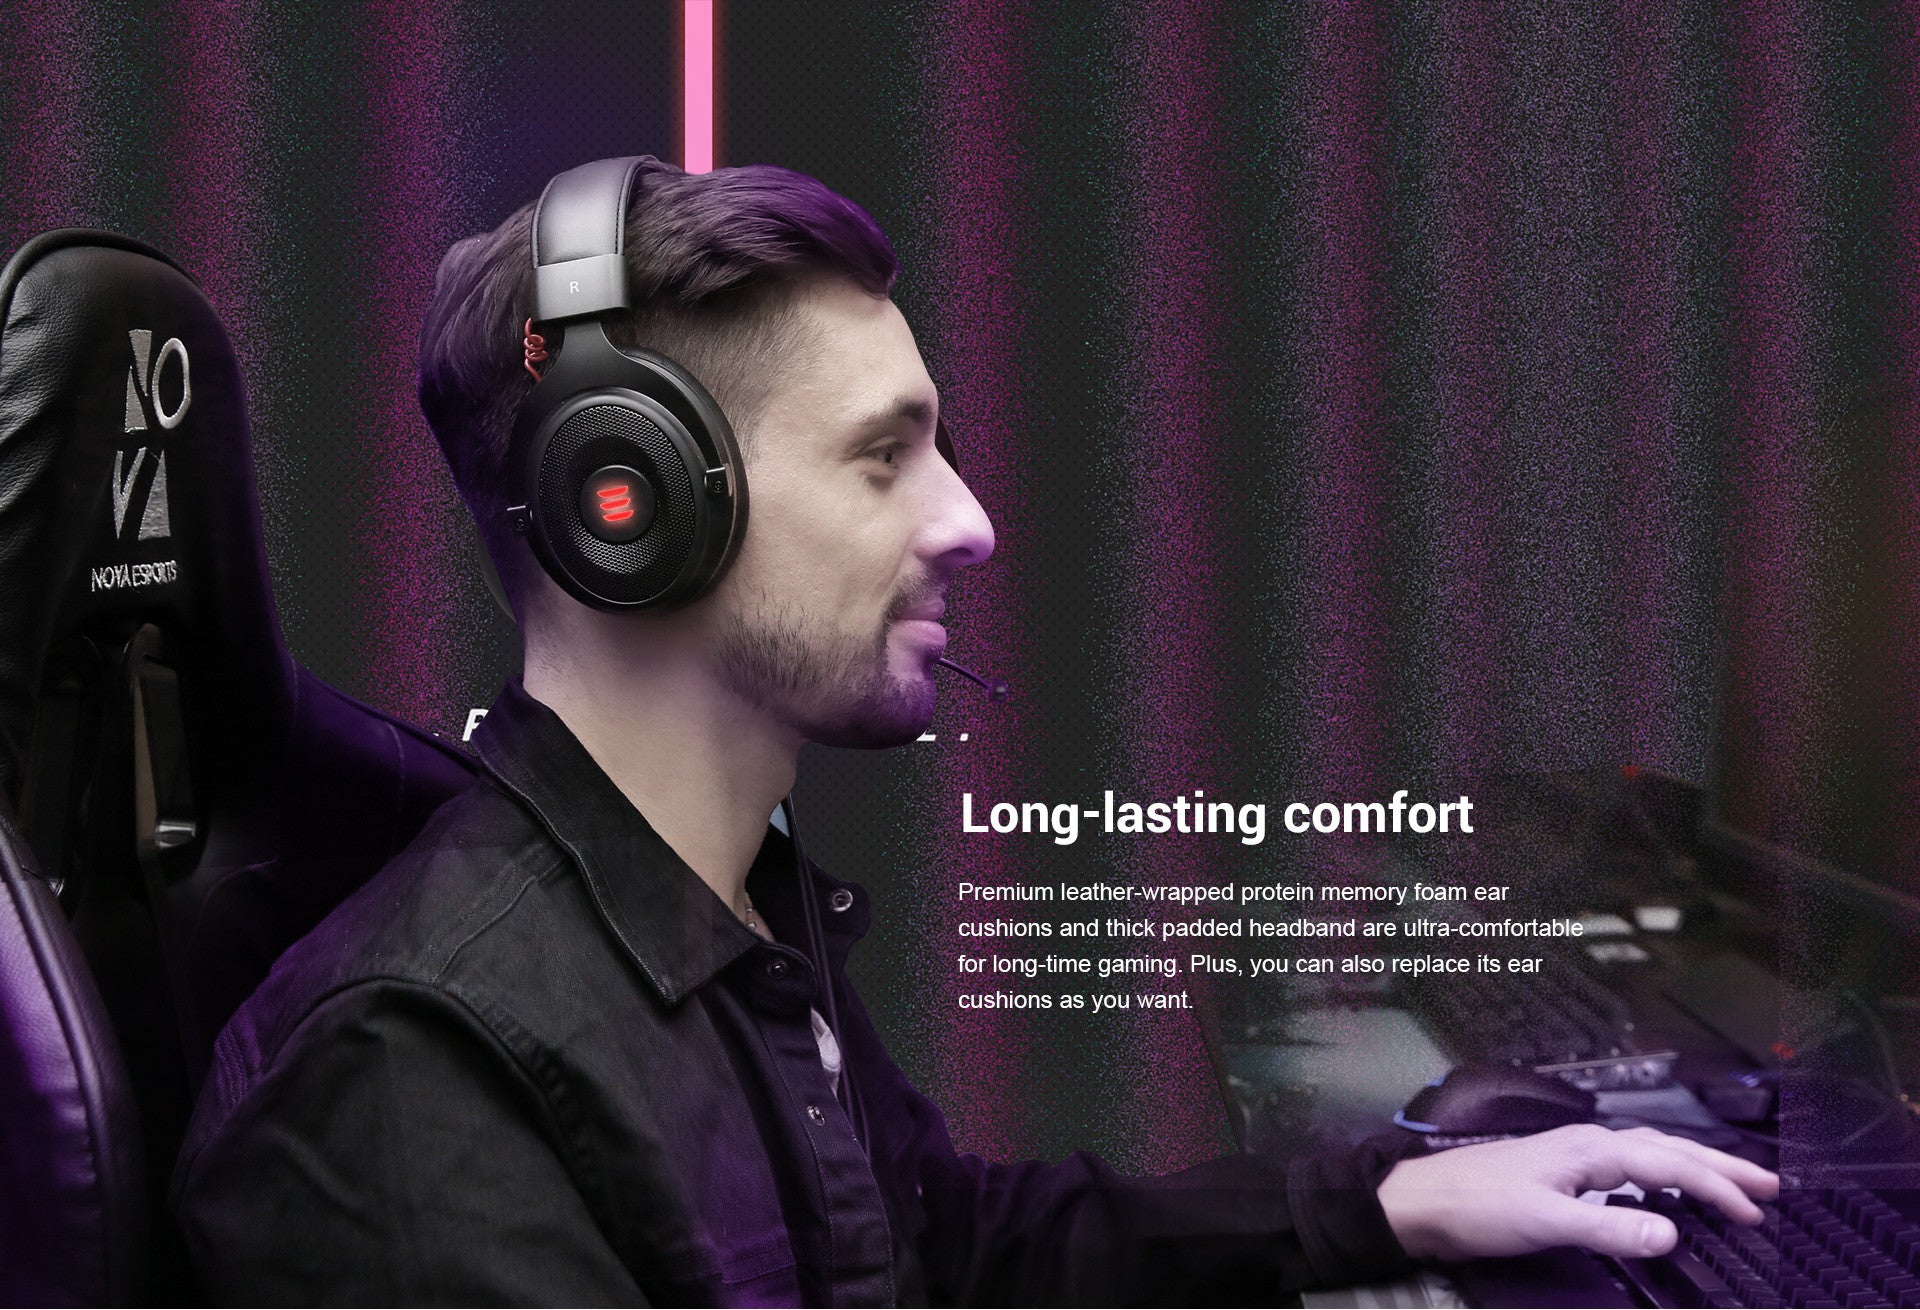 Premium leather-wrapped protein memory foam ear cushions and thick padded. Headband are ultra-comfortable for long-time gaming. Plus, you can also replace its ear cushions as you want.